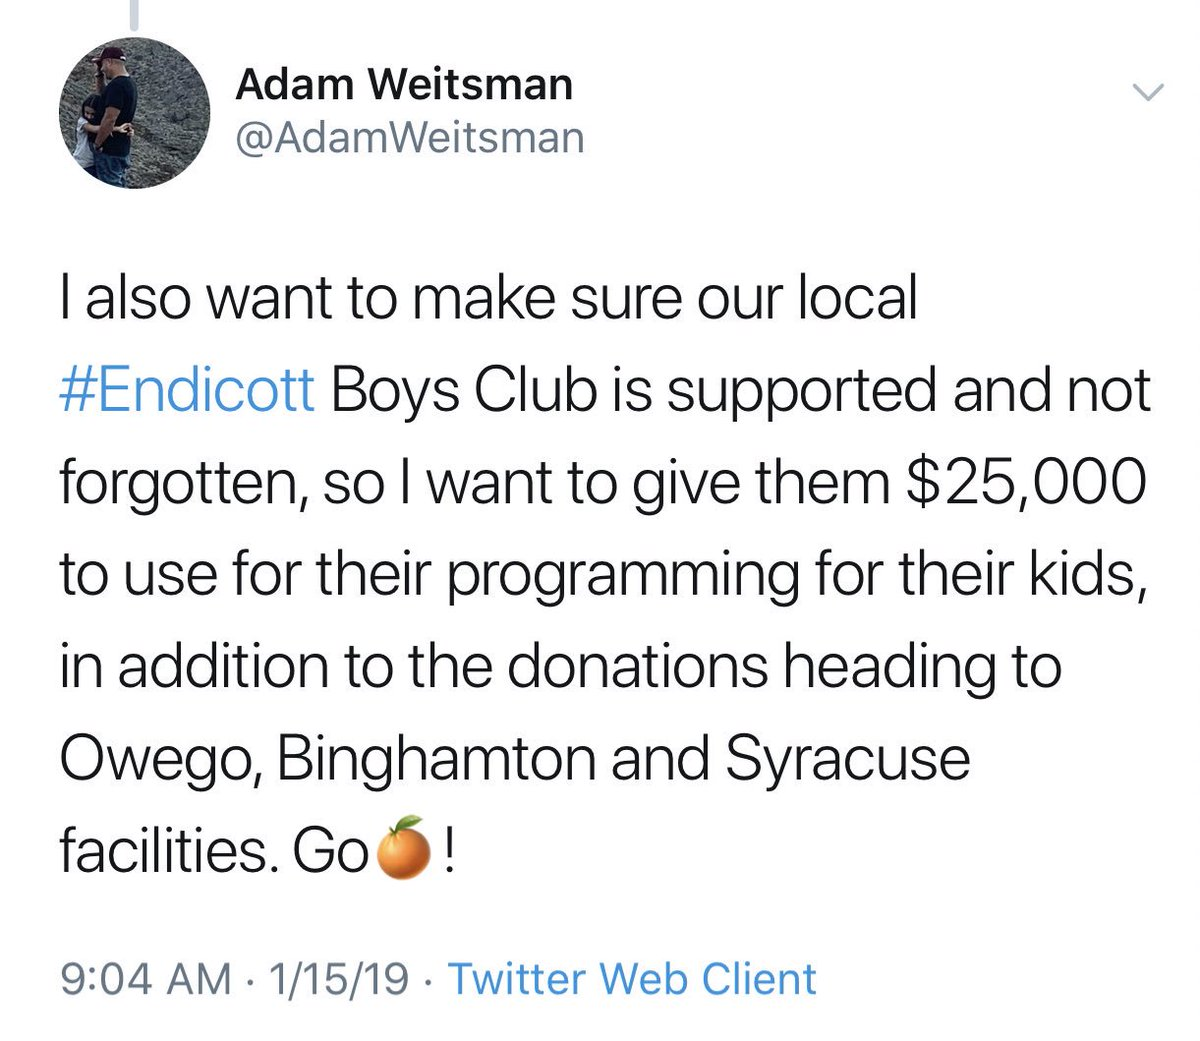 Well, what do we have here? An outlandish Twitter challenge that a guy actually delivered on? Nice work, @AdamWeitsman